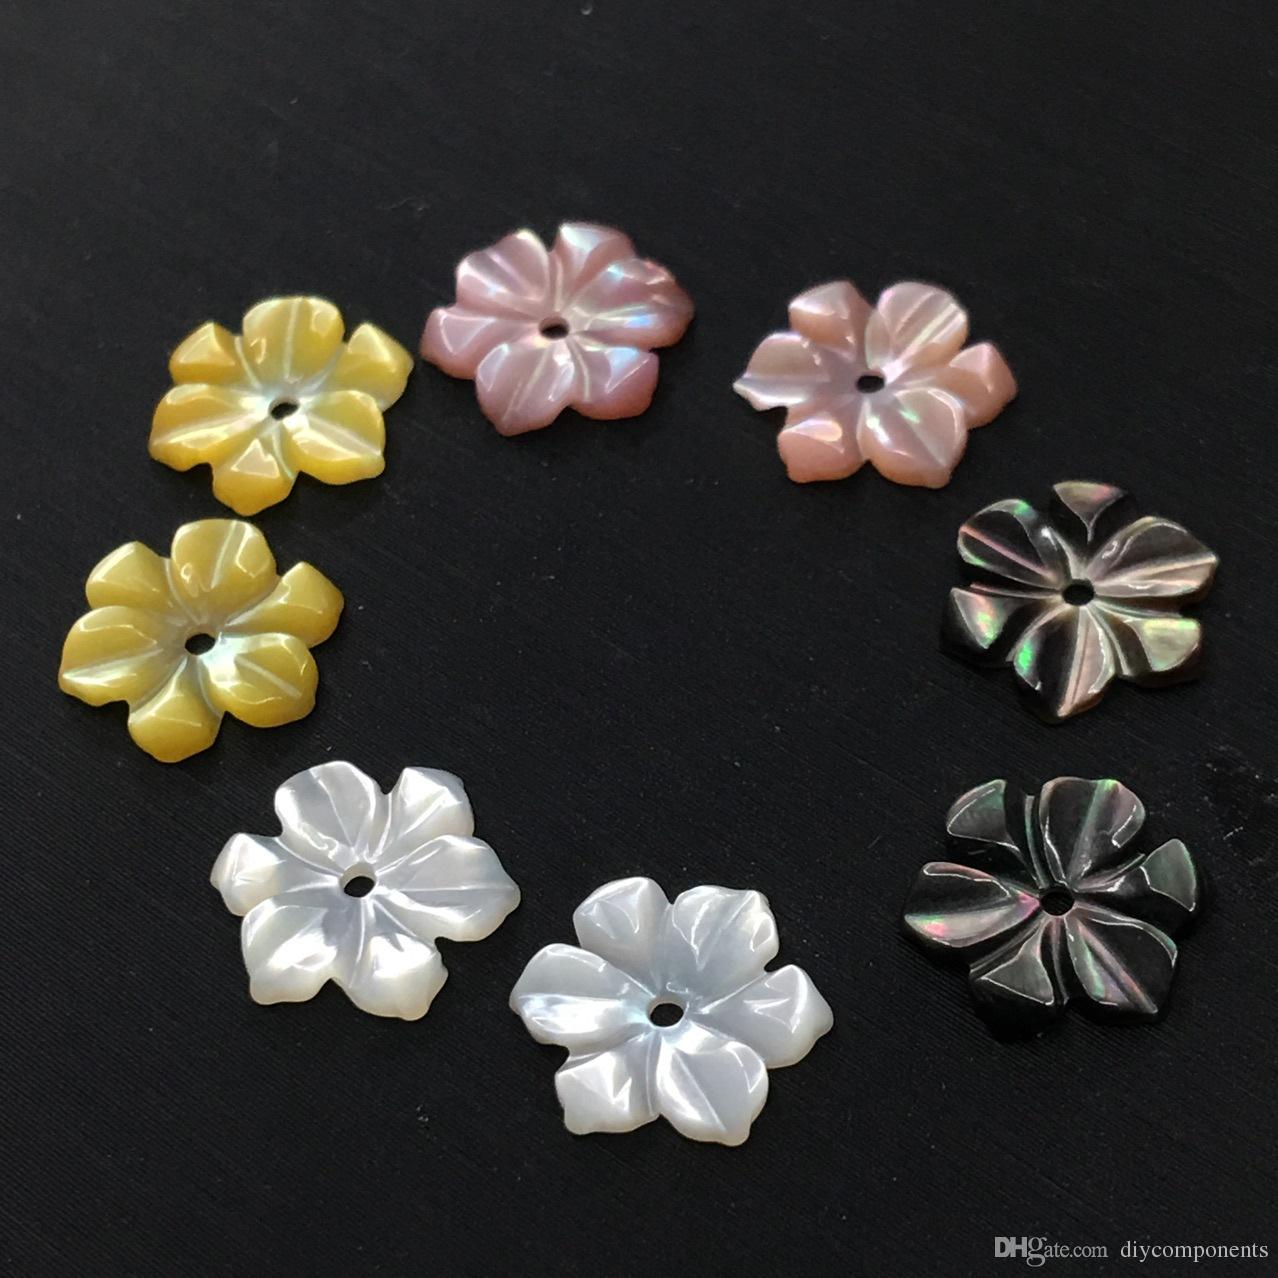 2018 wholesale 3d carved seashell beads 6 petals shell flower 10mm 2018 wholesale 3d carved seashell beads 6 petals shell flower 10mm white pink yellow black available for diy jewelry material from diycomponents mightylinksfo